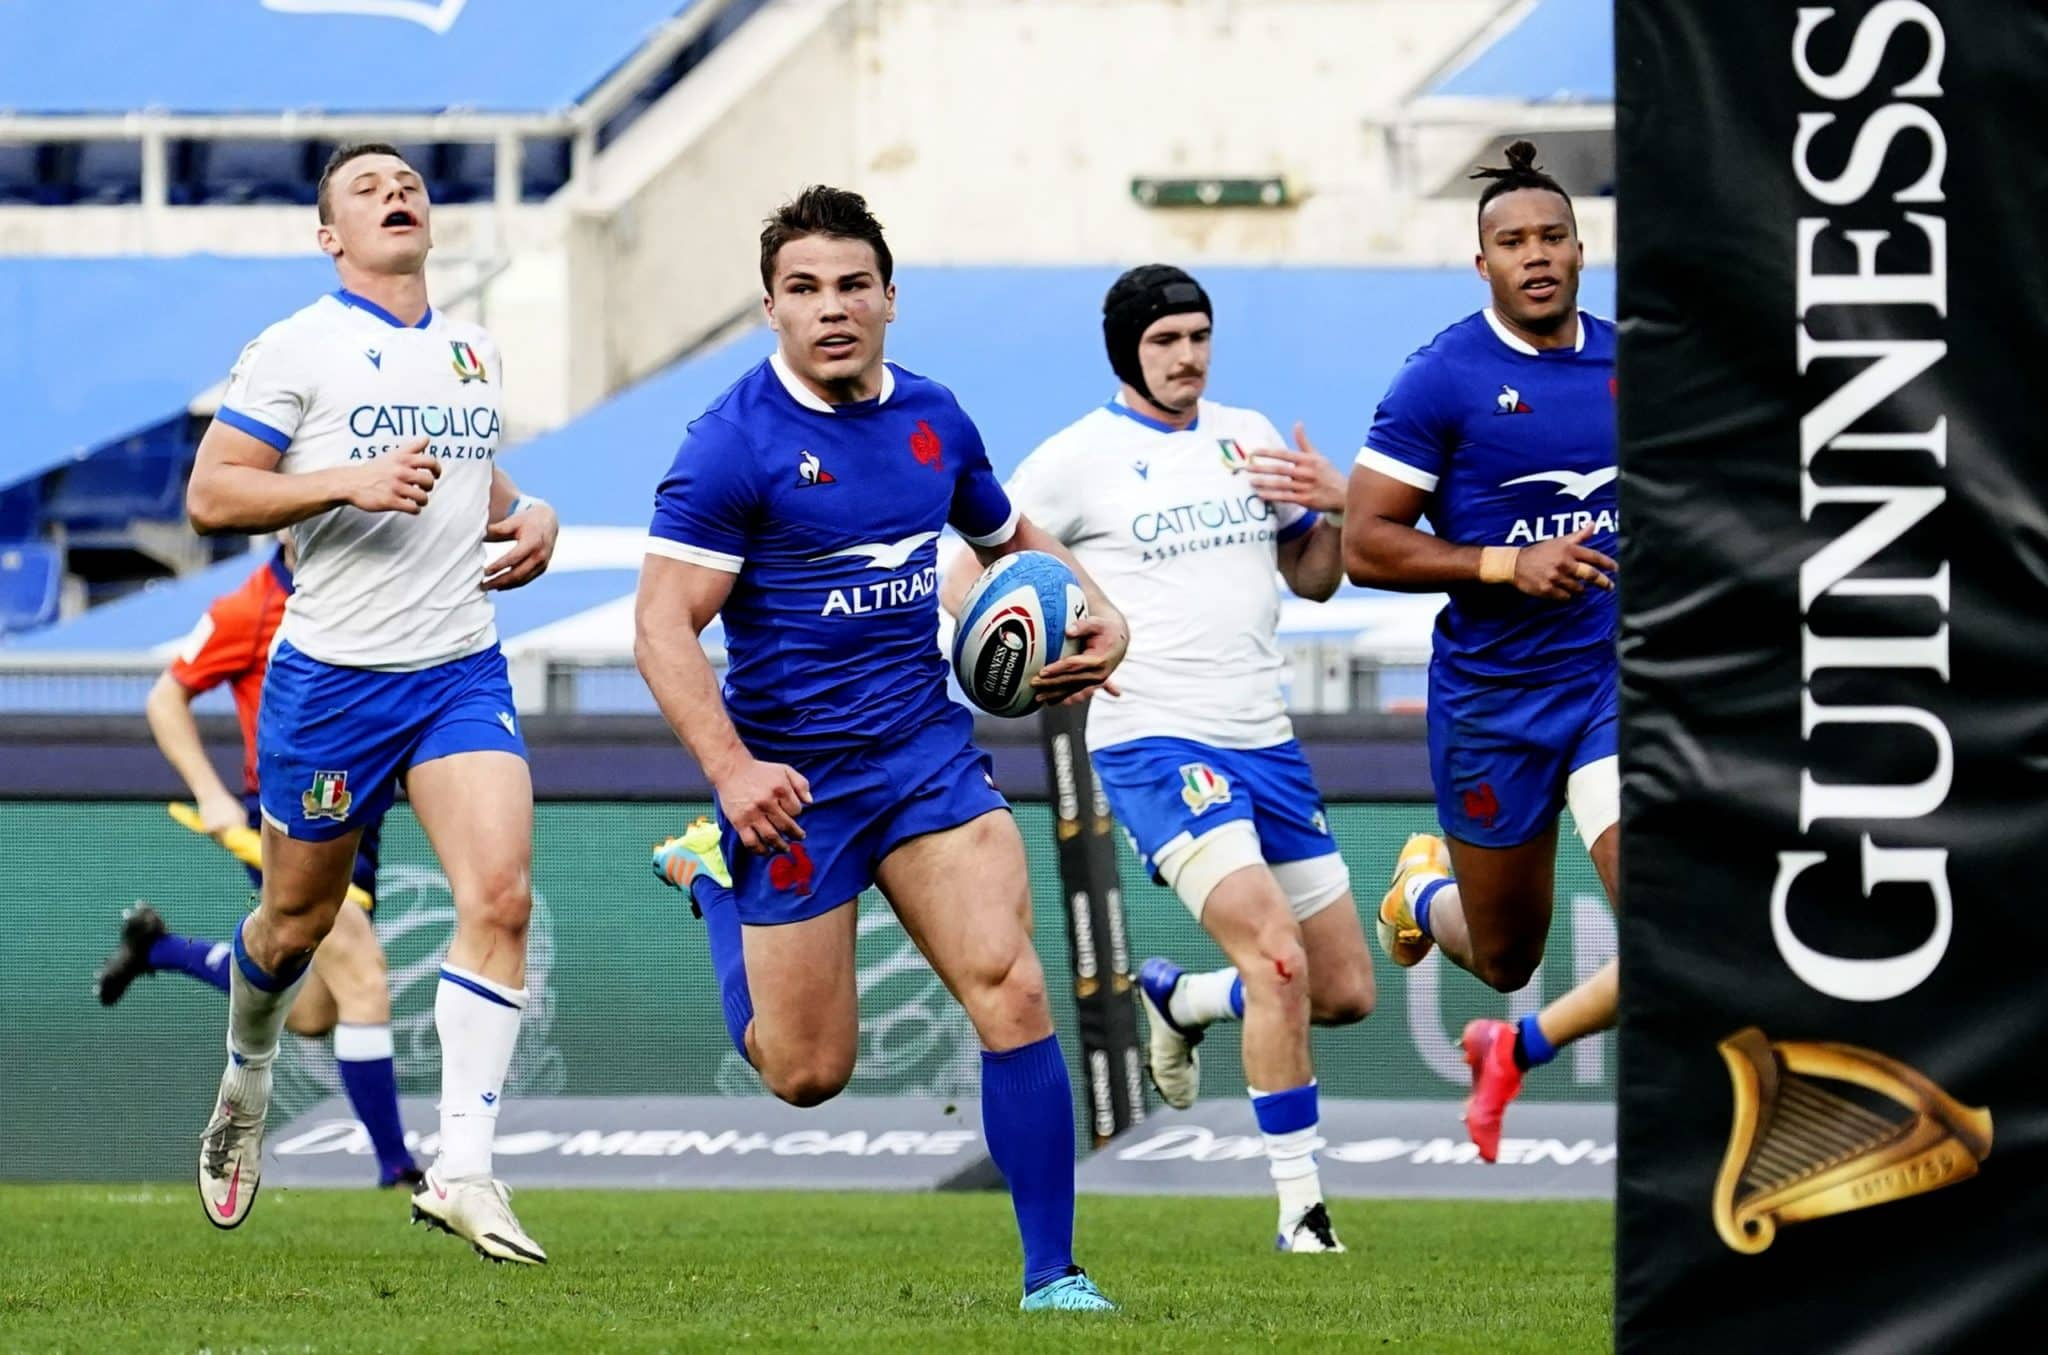 Round 2 Six Nations 2021 France